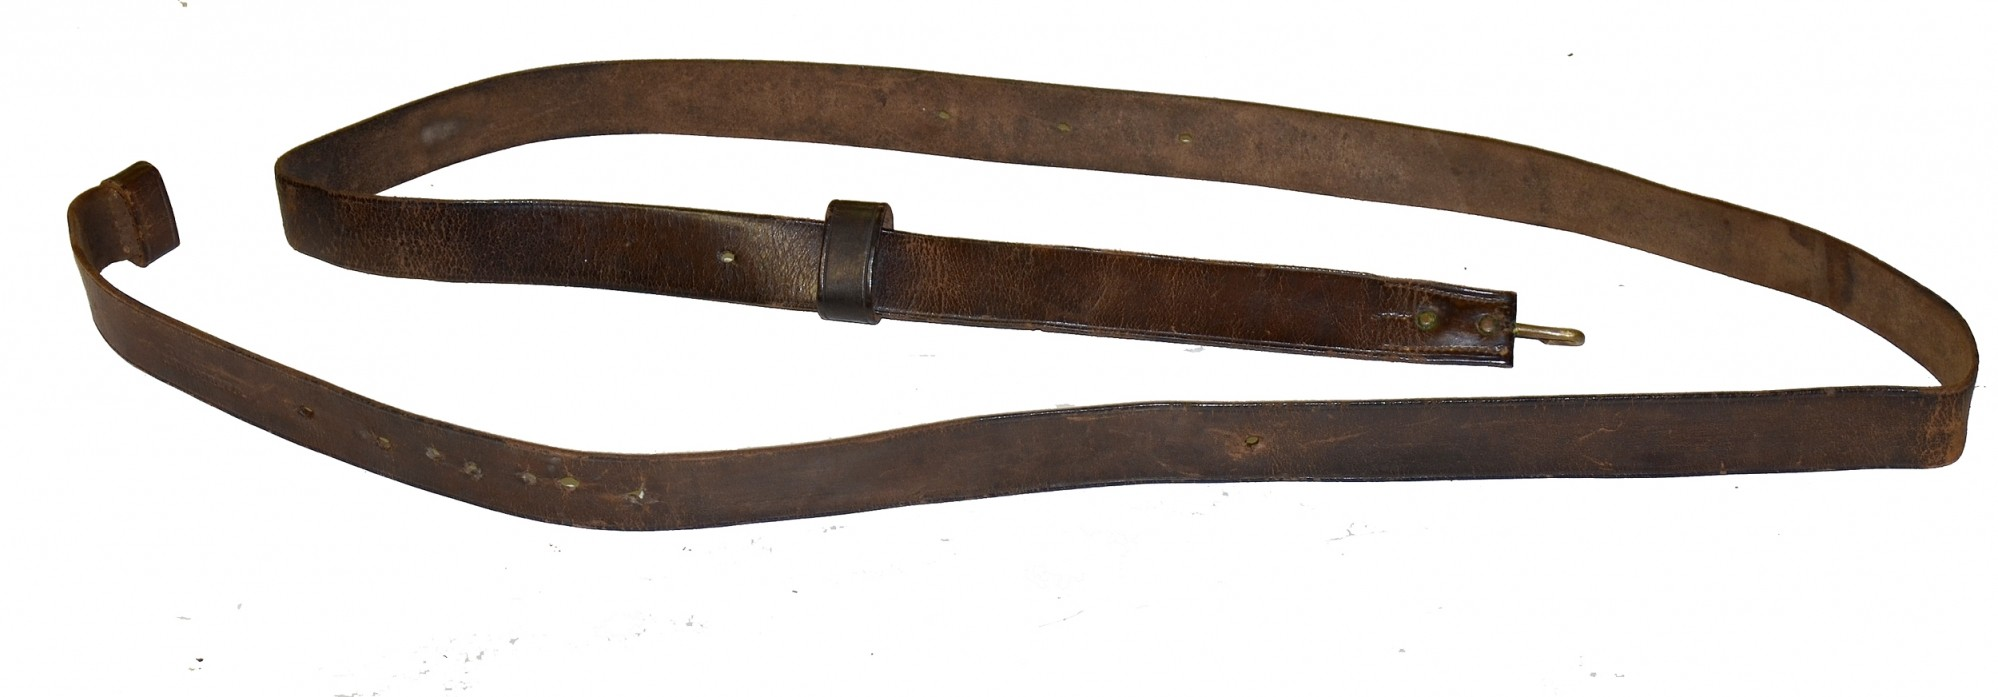 "US .58 CALIBER MUSKET RIFLE SLING, WITH ""WATERVLIET ARSENAL"" STAMPING"